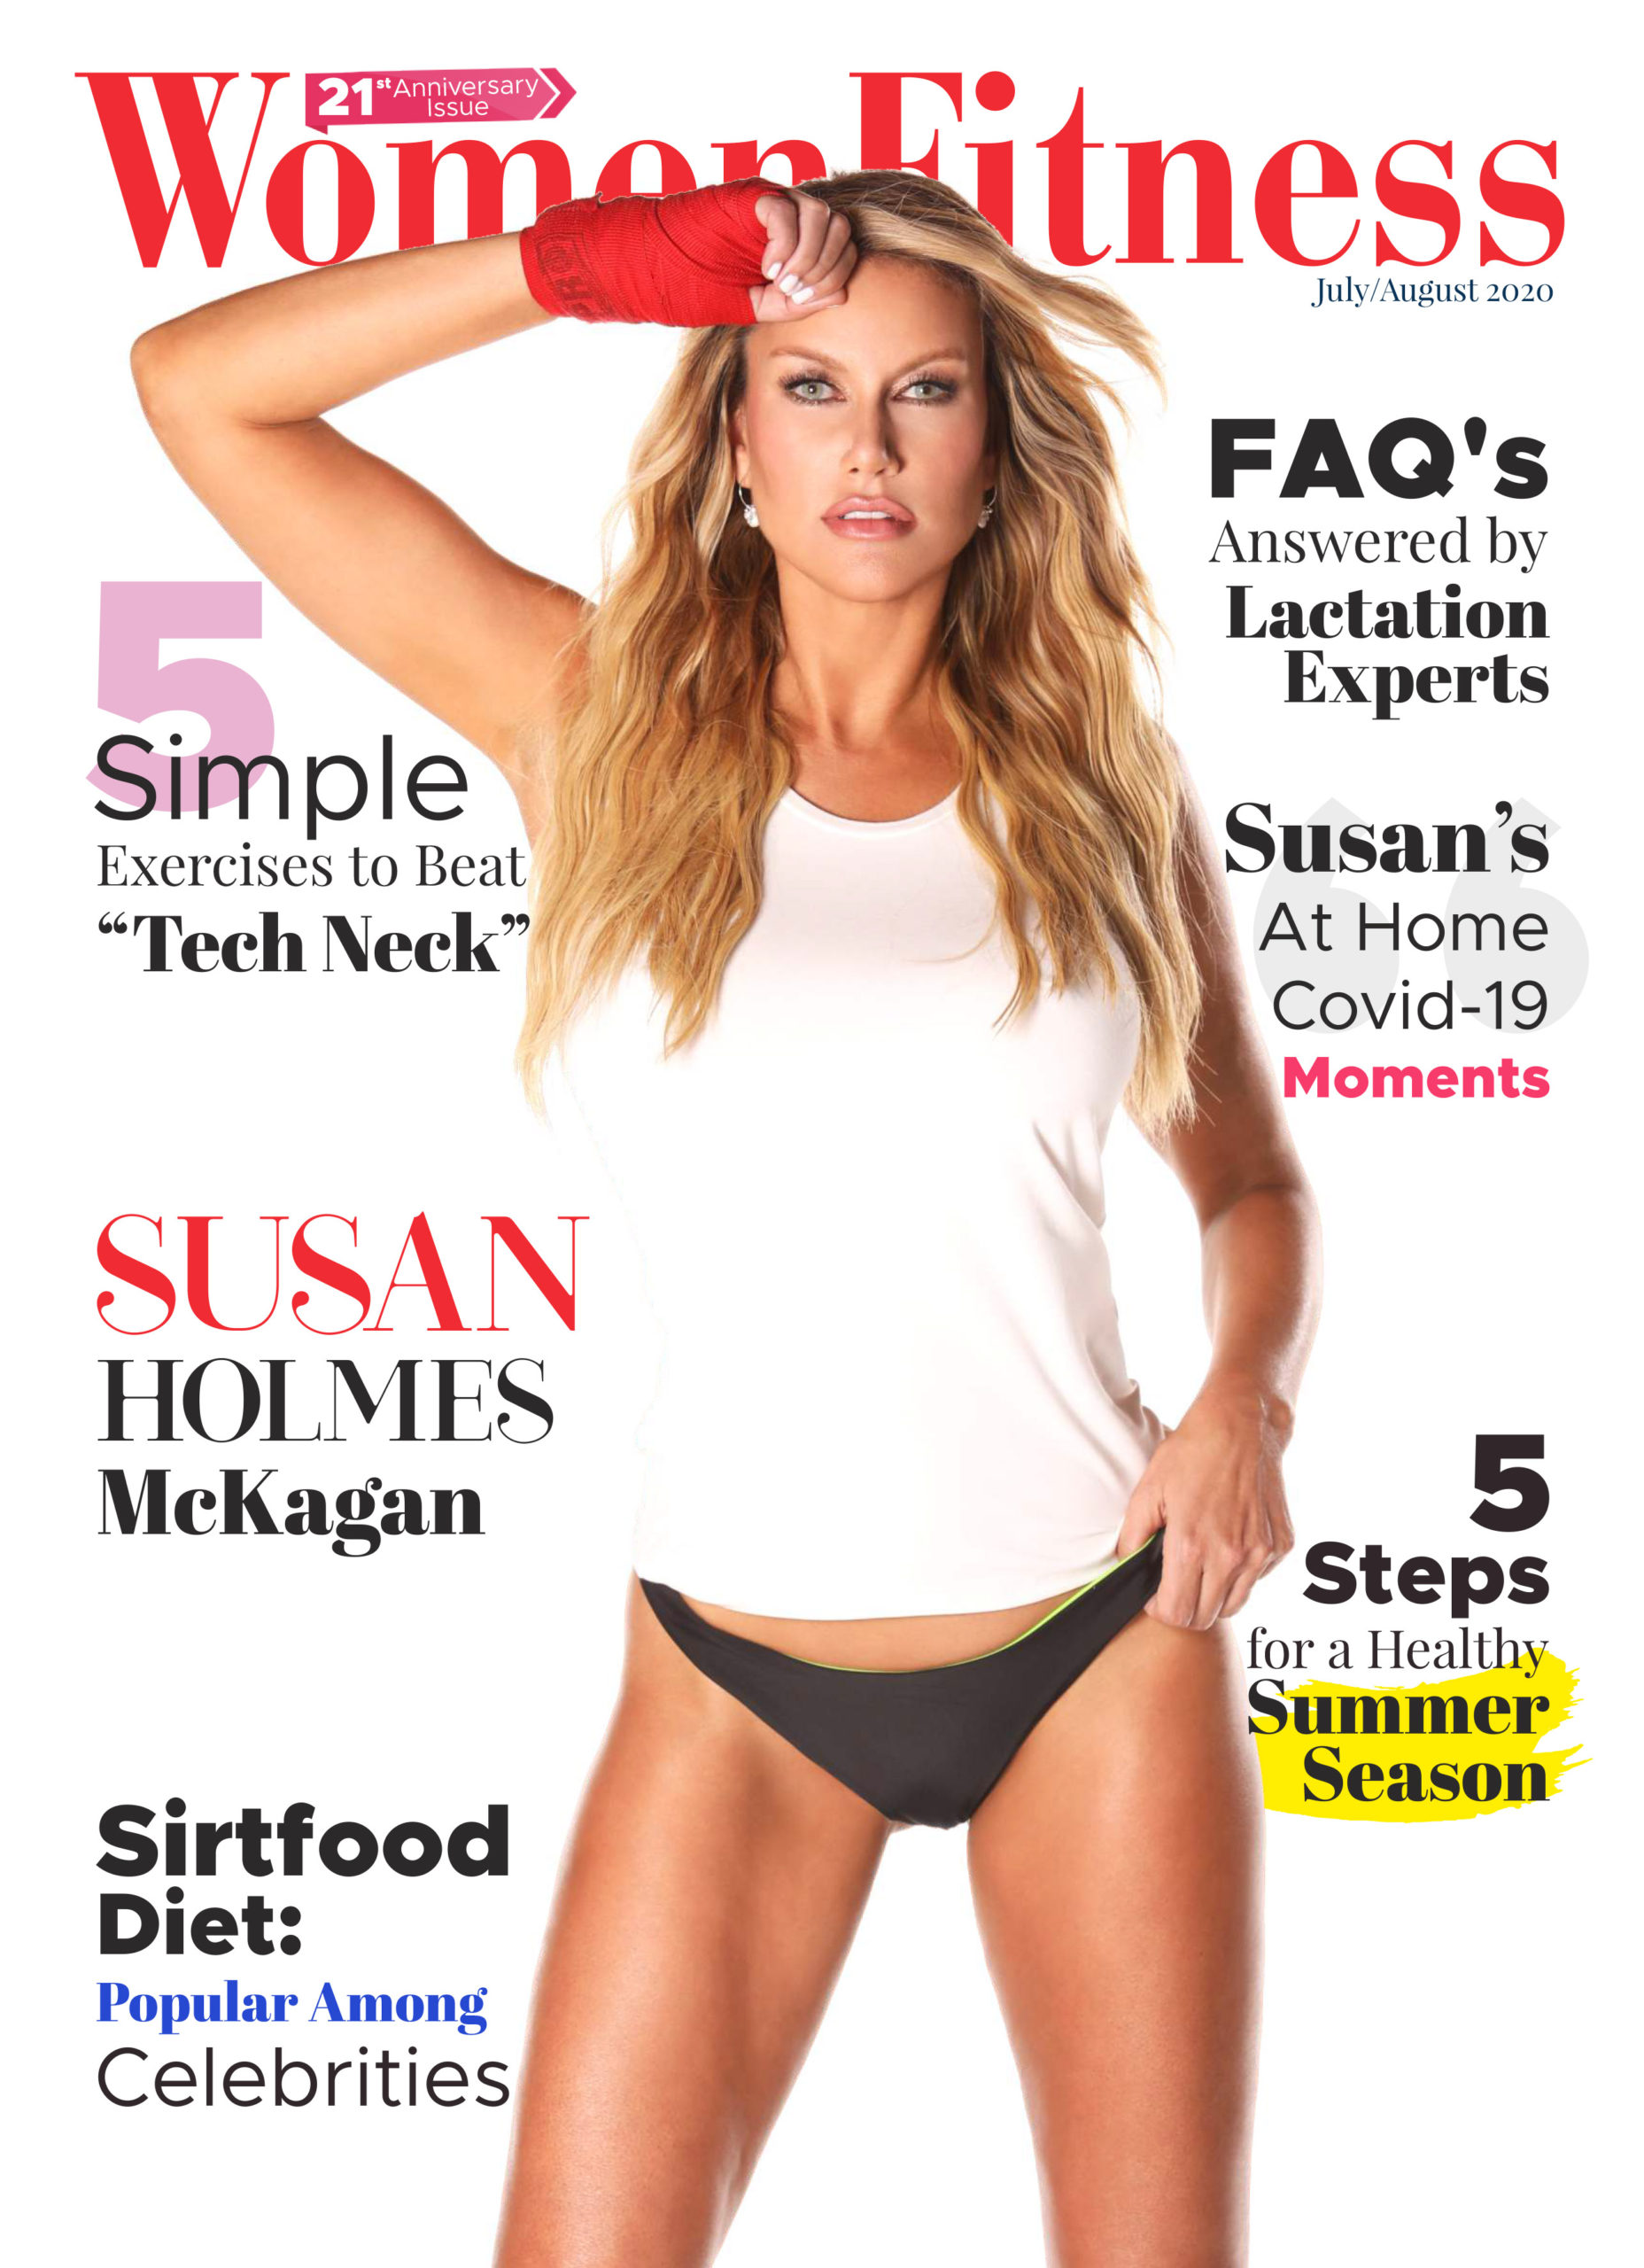 Women Fitness August 2020 issue